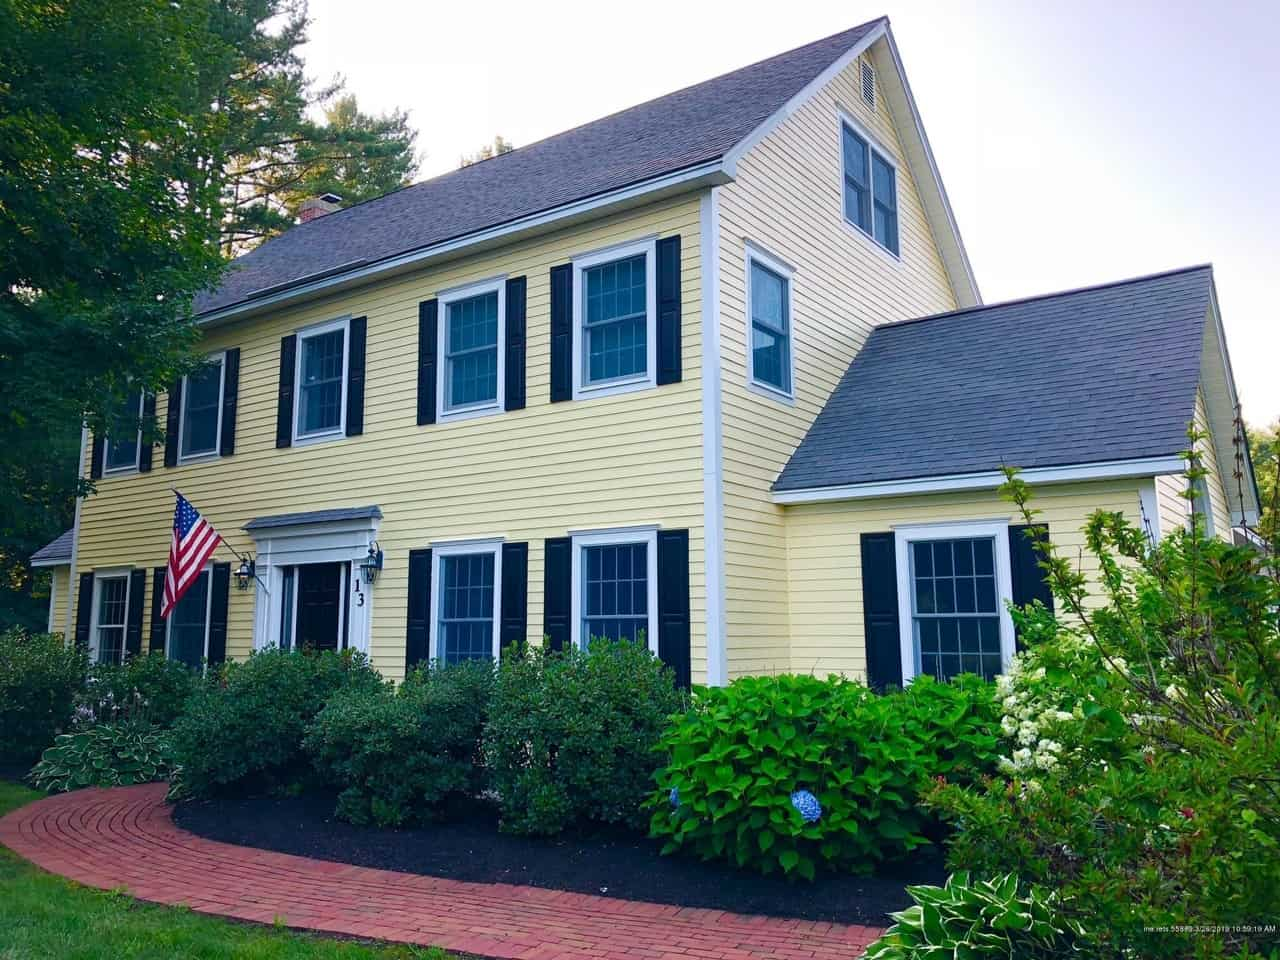 Yellow colonial house with black shutters and white trim